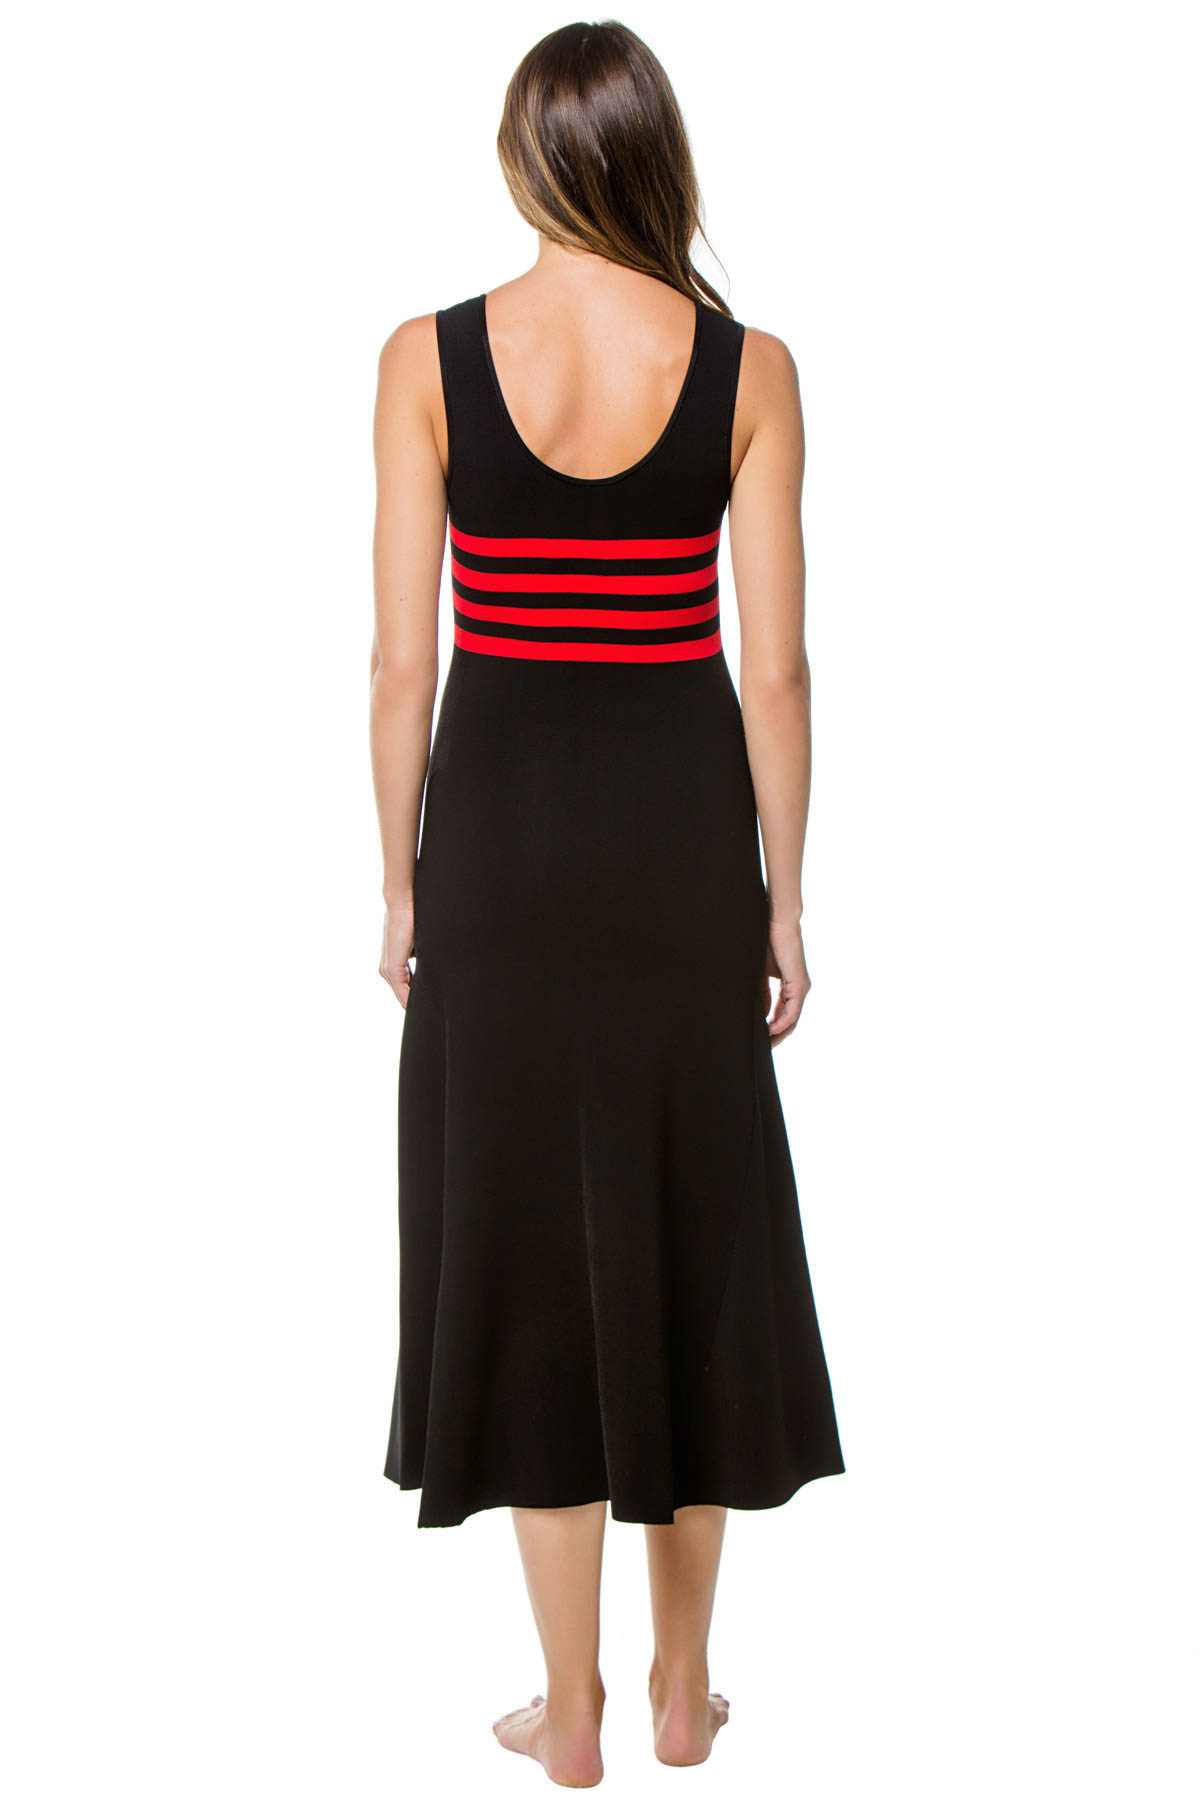 Riveria Ribbed Knit Mid-Length Dress - Red/Black 2